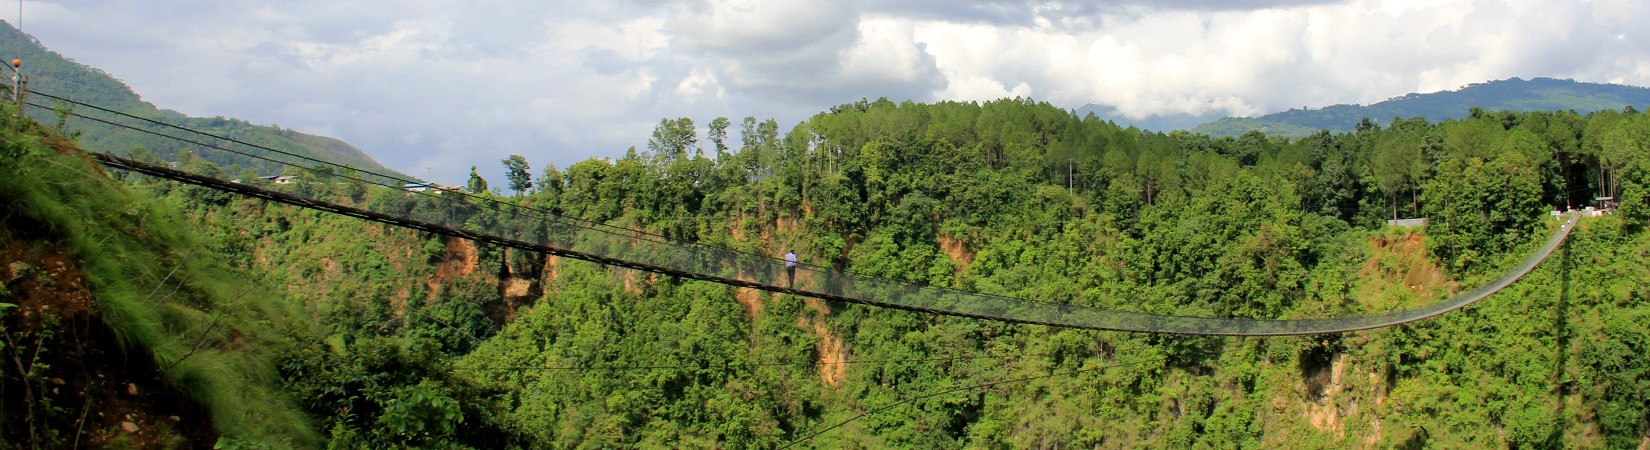 chitre high bridge baglung trekking